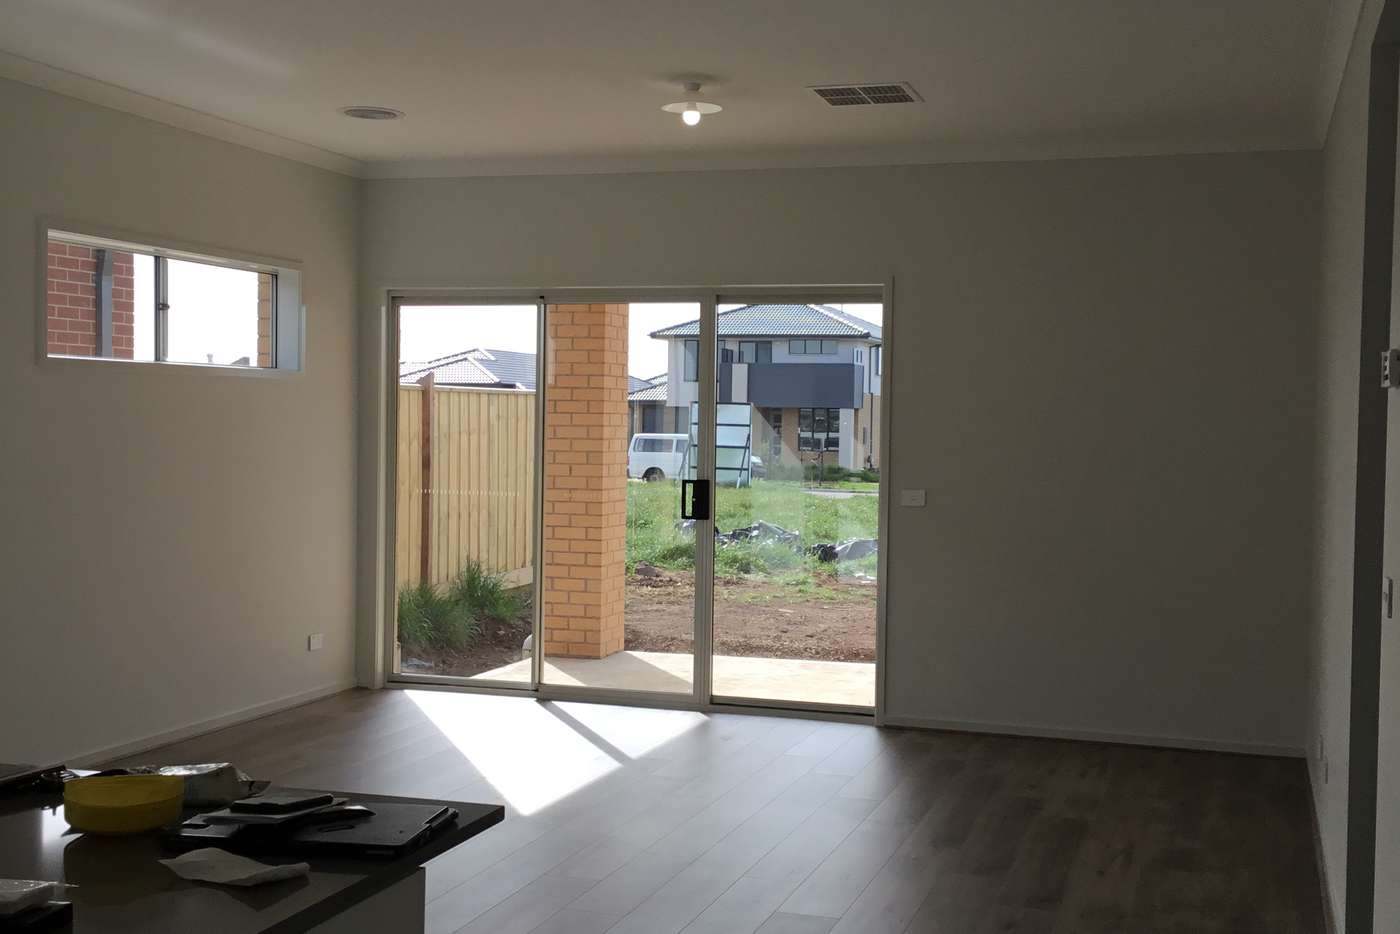 Main view of Homely house listing, 9 Napier Street, Tarneit VIC 3029